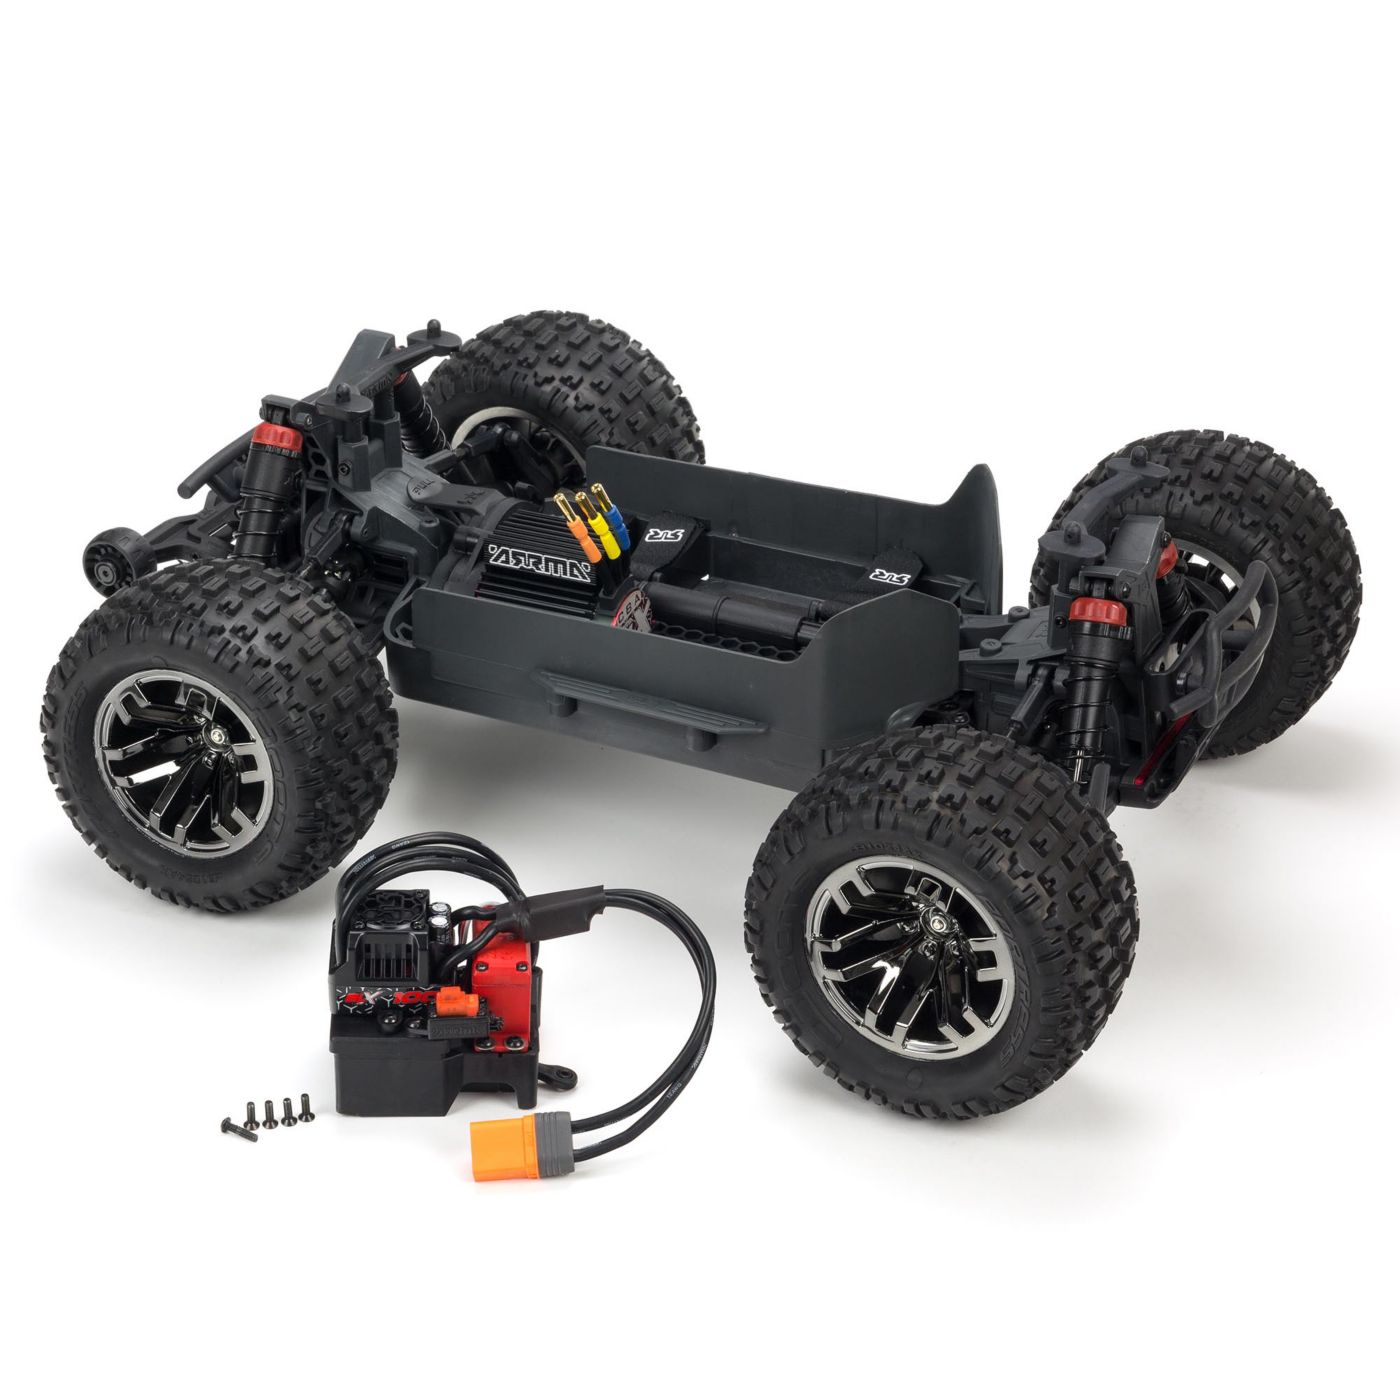 Arrma Granite 3S 4x4 Brushless BLX RTR 4